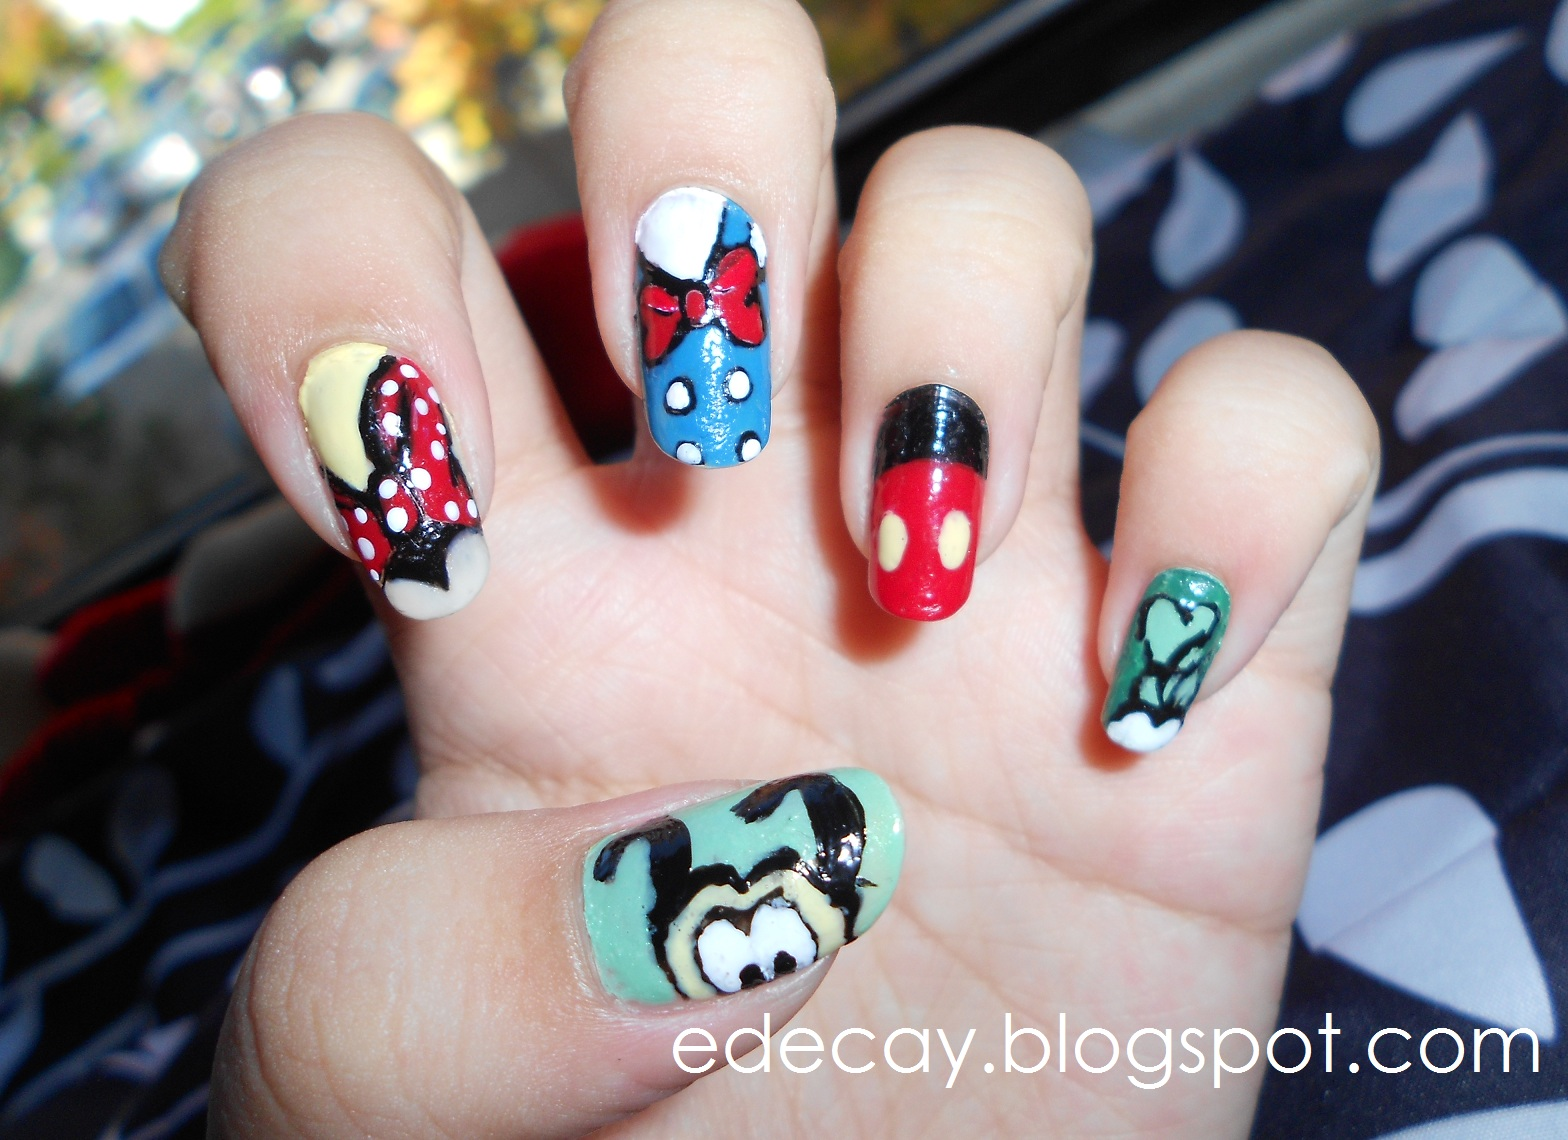 Simple Disney Nail Designs Minnie Mouse Inspired Art Cute Easy